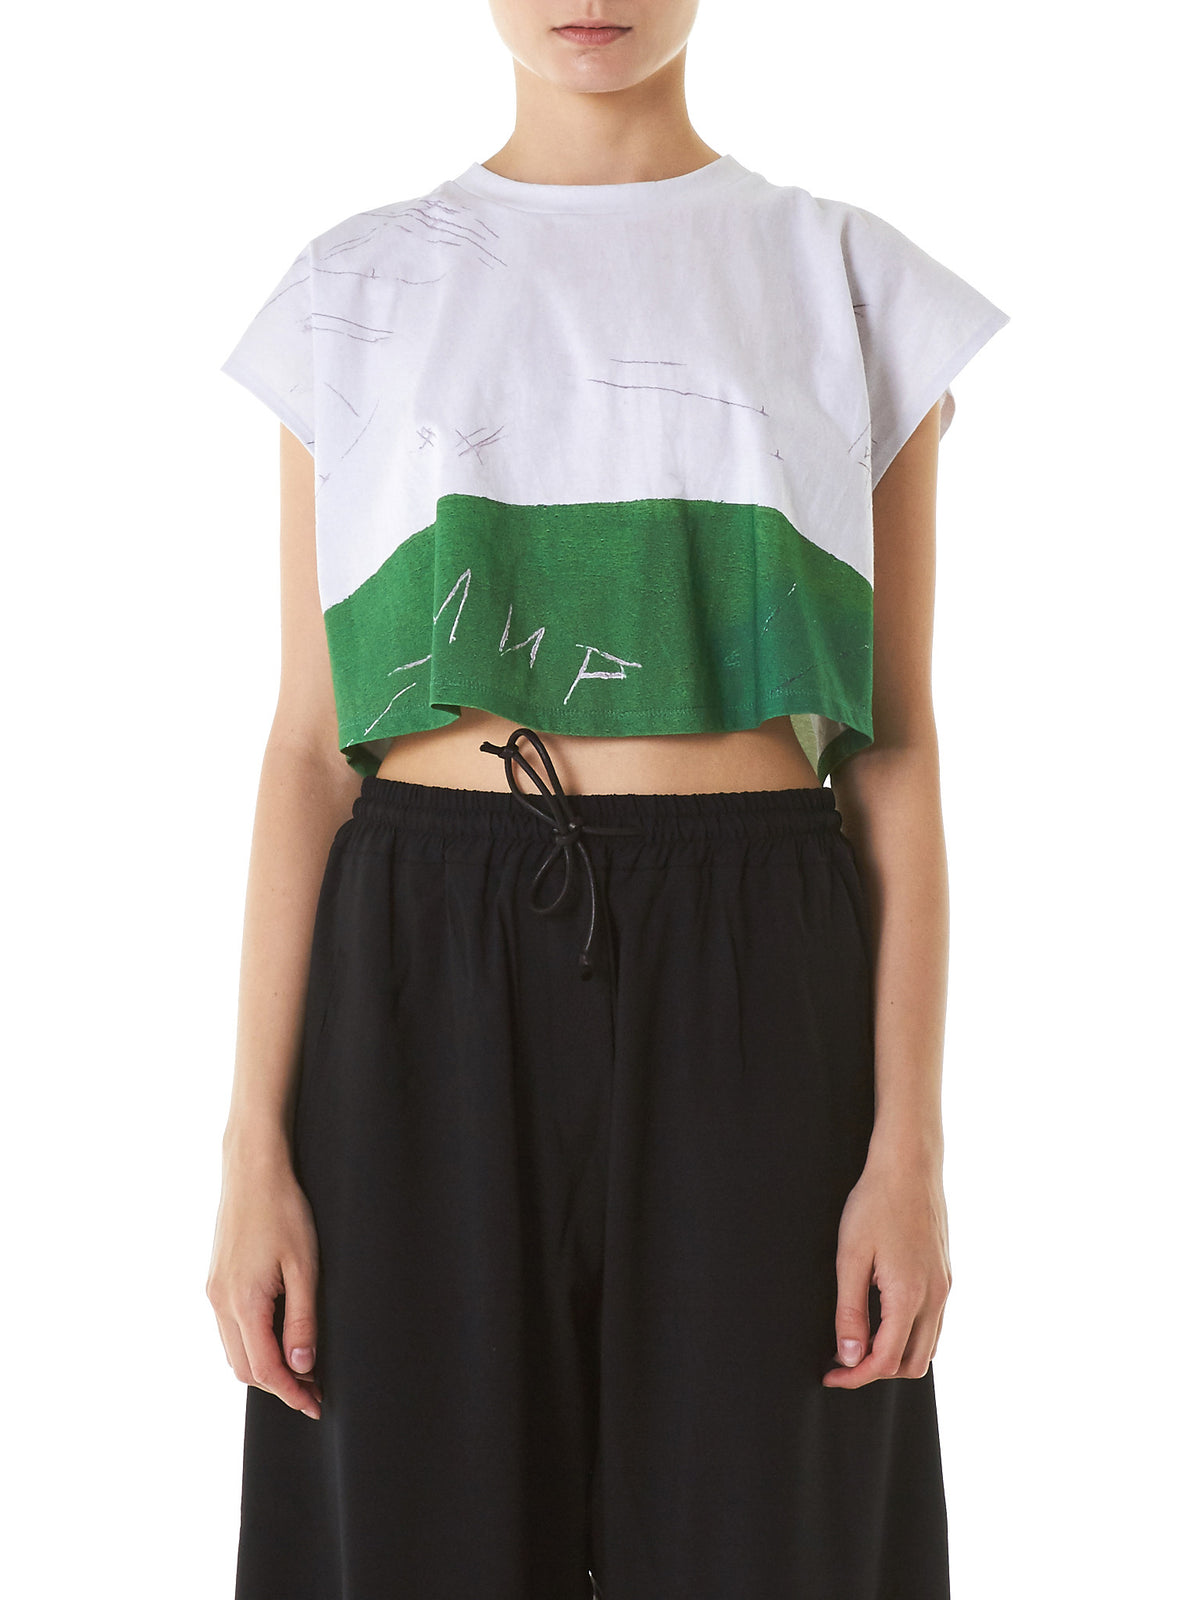 'Etched' Graphic Cropped Top(12134-WHITE-GREEN) - H. Lorenzo